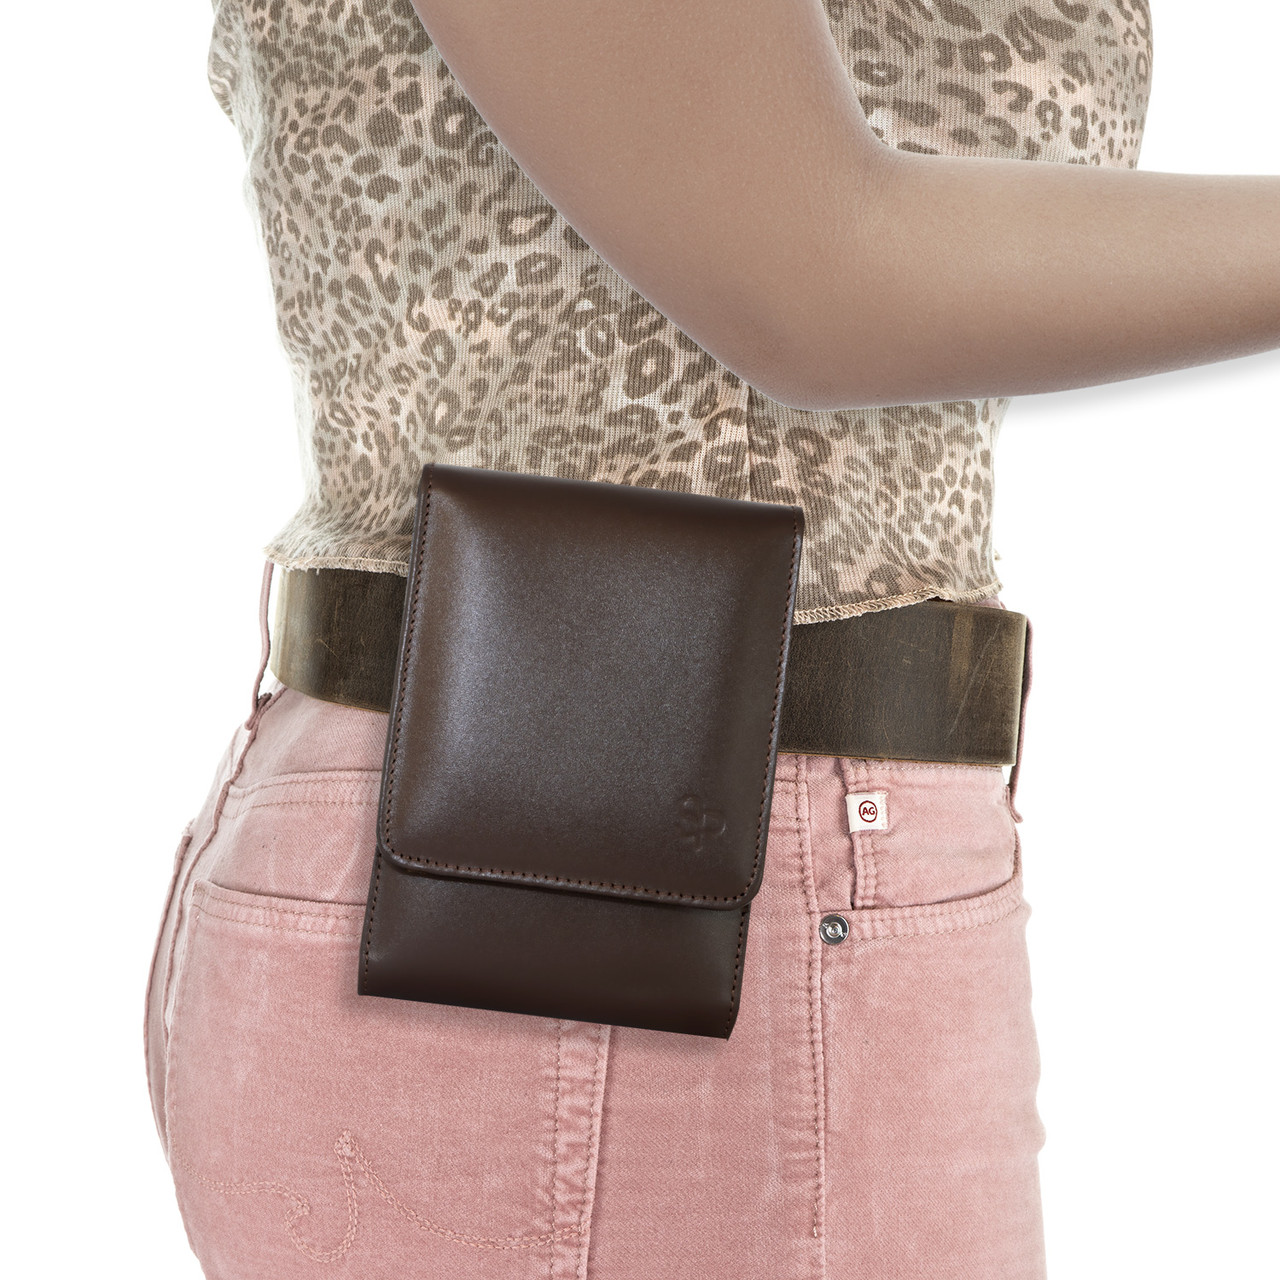 Taurus G2S Brown Leather Series Holster